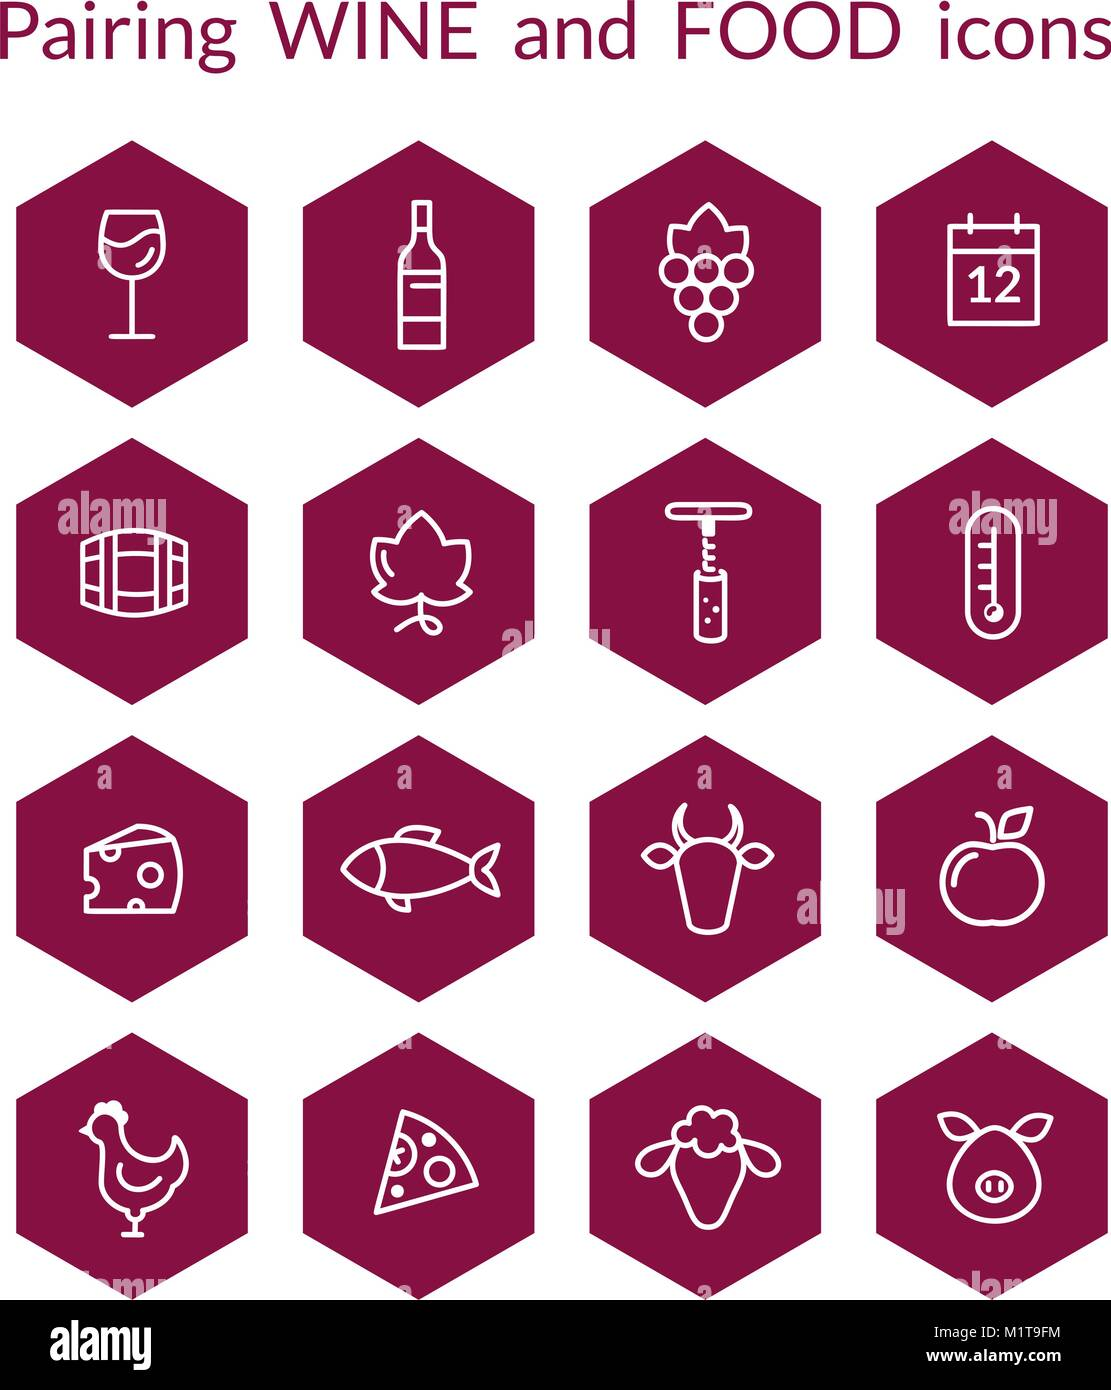 Set of vector icons for wine and food pairing matching, Includes fish, beef, pork, fruits, bottle, glass, grapes. - Stock Image